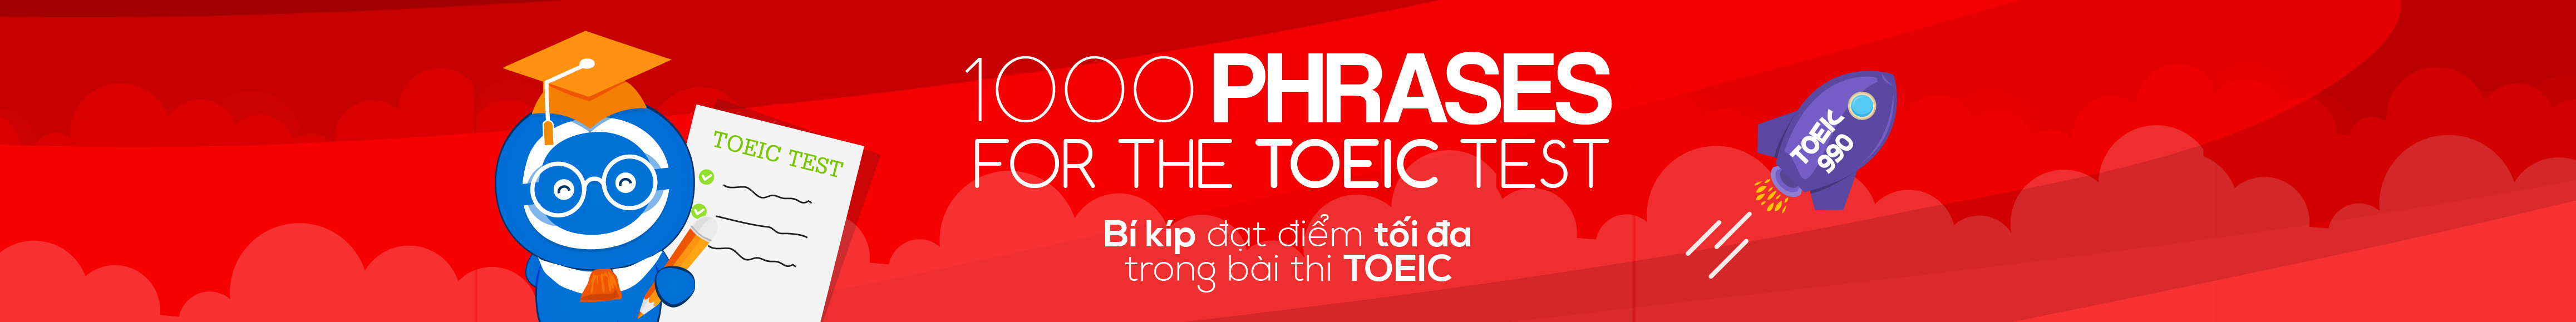 1000 Essential Phrases for The TOEIC Test